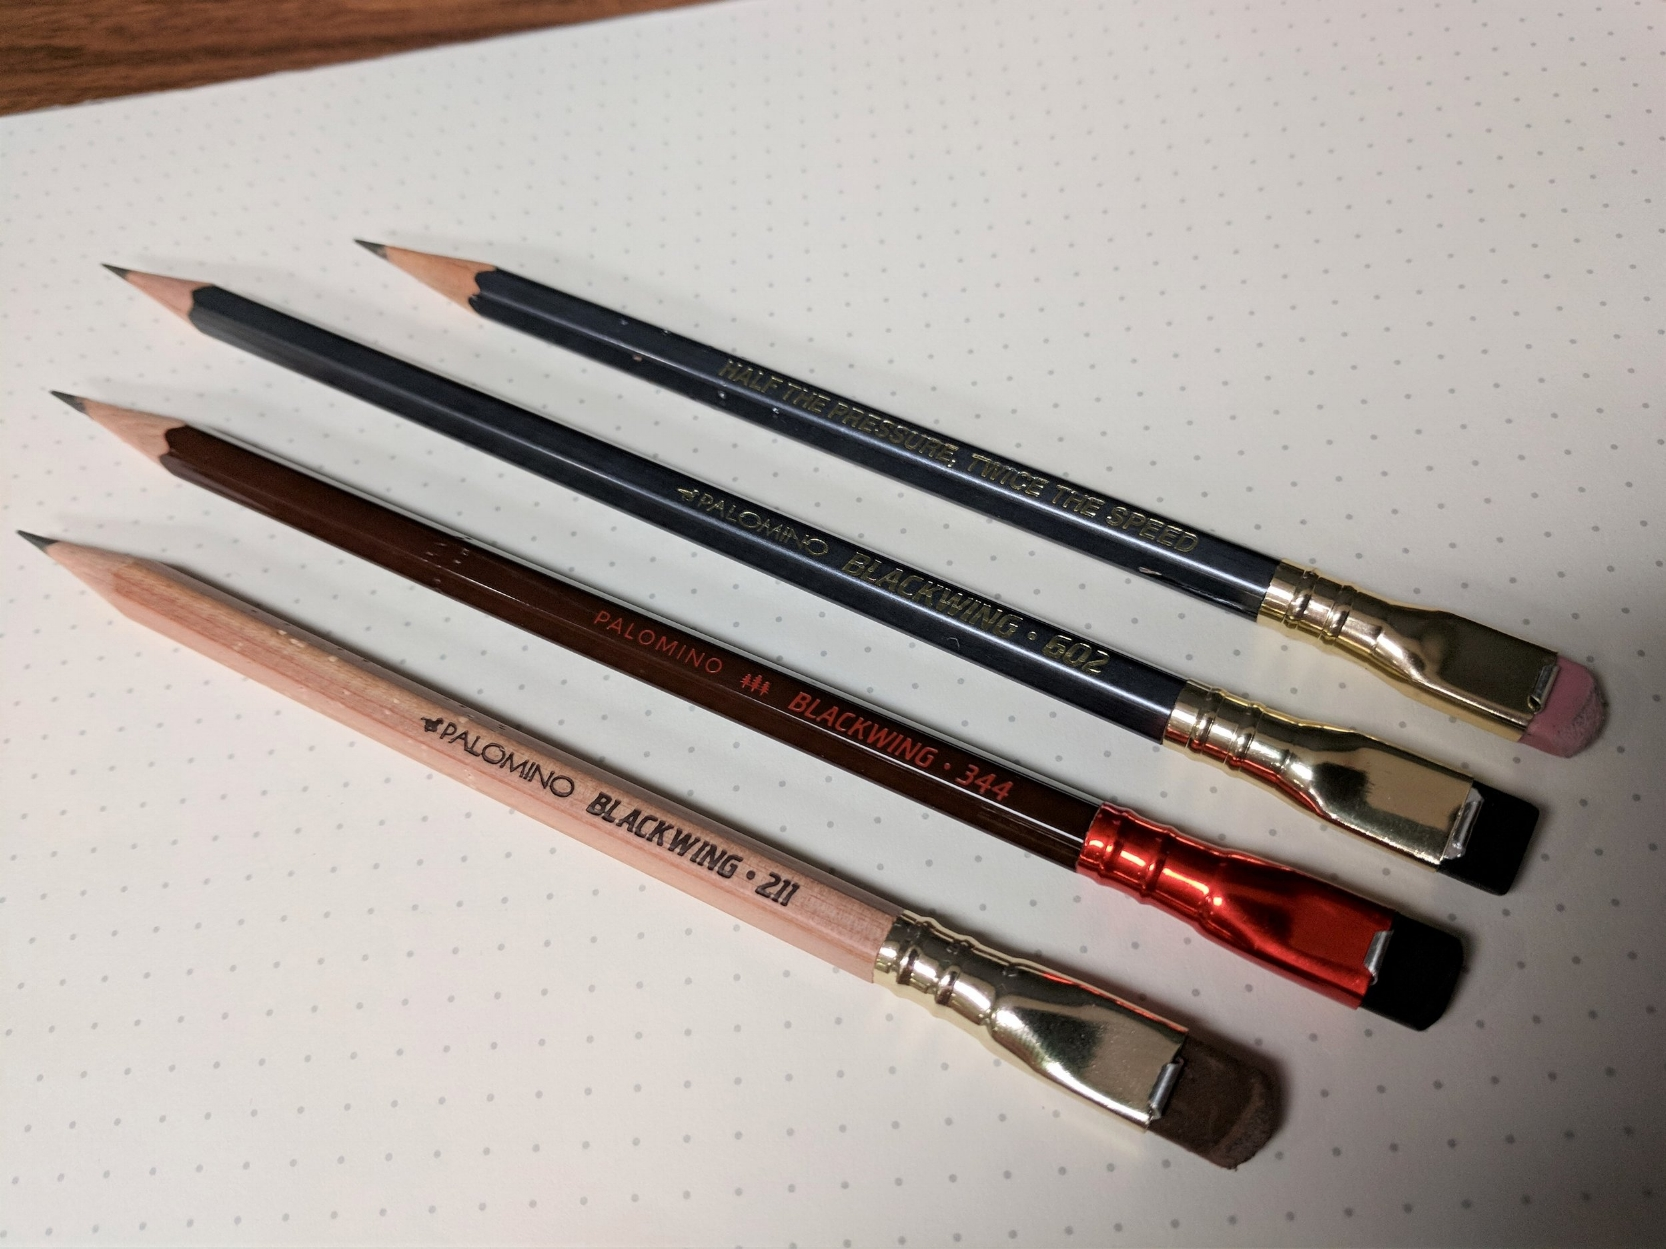 I own two of the Blackwing Volumes editions that featured the 602 core: the Blackwing 211 (John Muir) and the Blackwing 344 (Dorothea Lange). The Blackwing 344 features the most recent logo and branding.